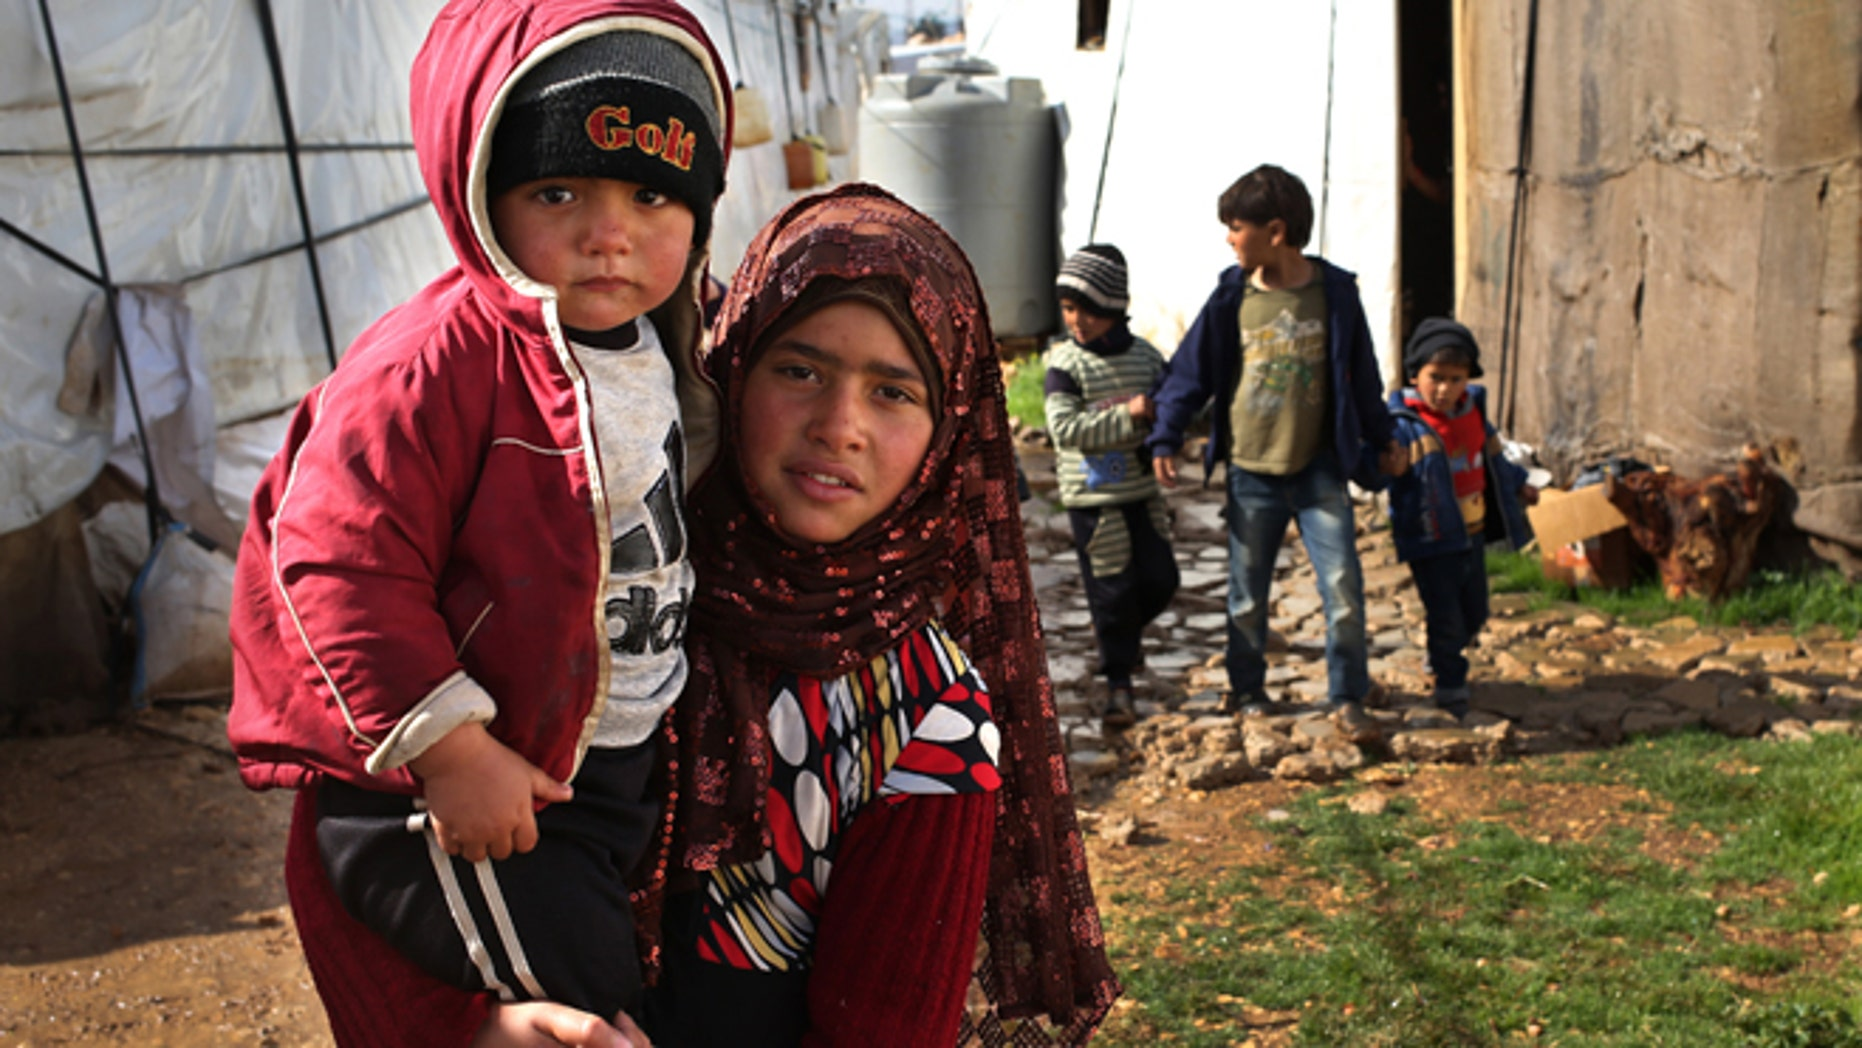 FILE -- March 12, 2014: A Syrian girl, foreground, carries her brother and walks between tents with other children, background, on their way to a makeshift school at their refugee encampment in the Lebanese-Syrian border town of Majdal Anjar, eastern Bekaa valley, Lebanon. More than 2 million of those who should be in school remain in Syria, where classrooms have been bombed, used as shelters or turned into military barracks. Another 300,000 Syrian children don't attend school in Lebanon, along with some 93,000 in Jordan, 78,000 in Turkey, 26,000 in Iraq and 4,000 in Egypt, UNICEF officials in Geneva said. Those numbers likely are higher, as UNICEF can't count the children whose parents didn't register with the United Nations refugee agency.